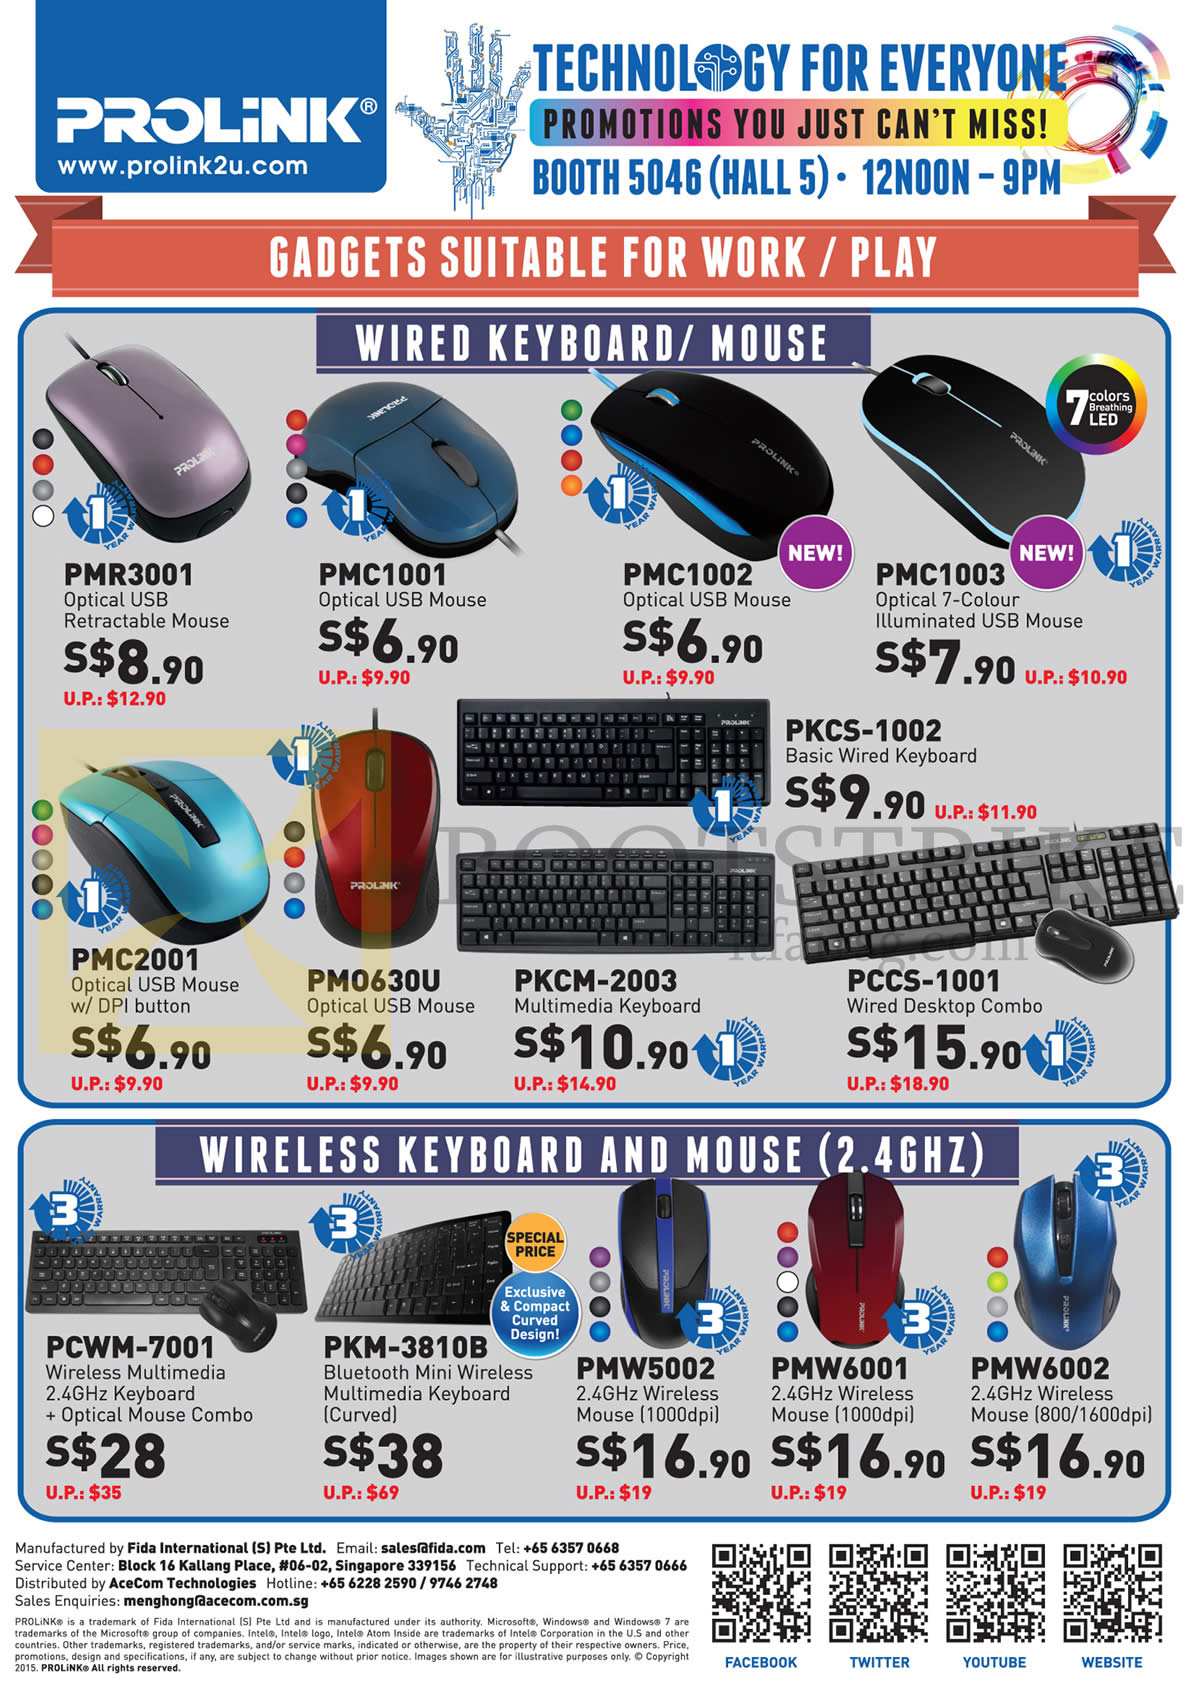 PC SHOW 2015 price list image brochure of Prolink Accessories Keyboard, Mouse, Wireless, USB